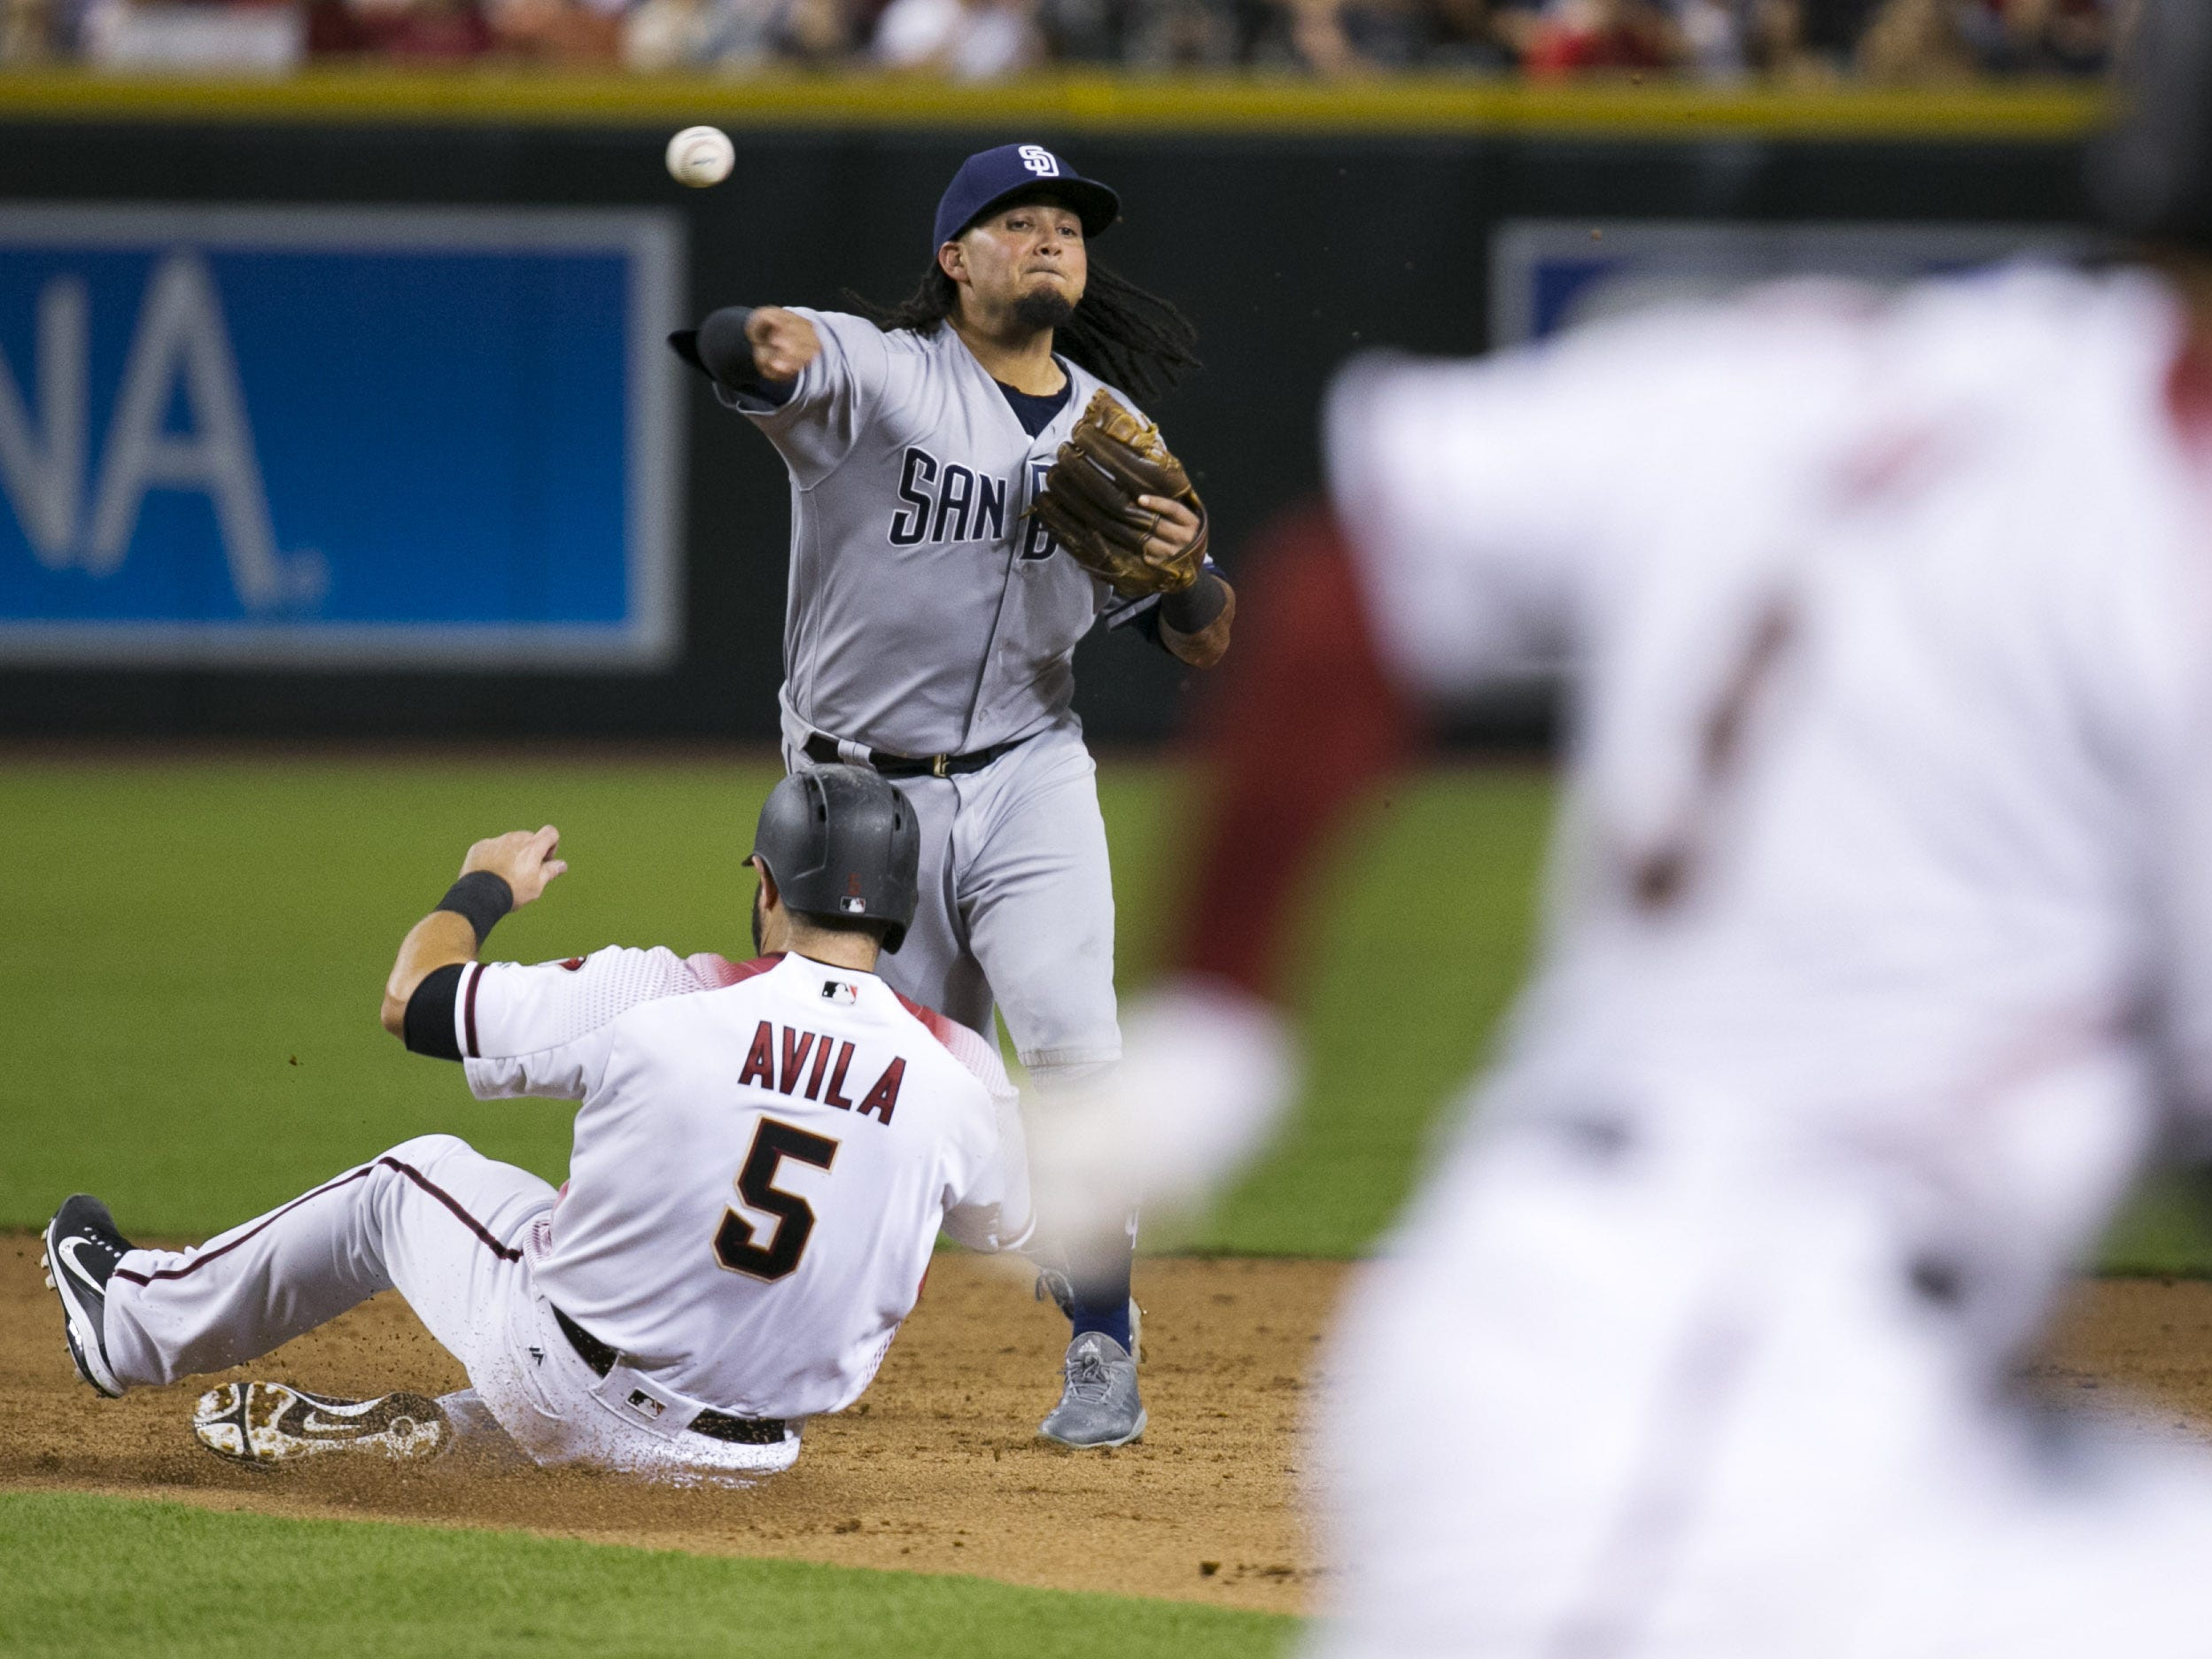 Padres shortstop Freddy Galvis turns a double play against the Diamondbacks Alex Avila sliding into second as the Diamondbacks John Jay runs to first during the fifth inning of the major league baseball game at Chase Field in Phoenix on Monday, September 3, 2018.